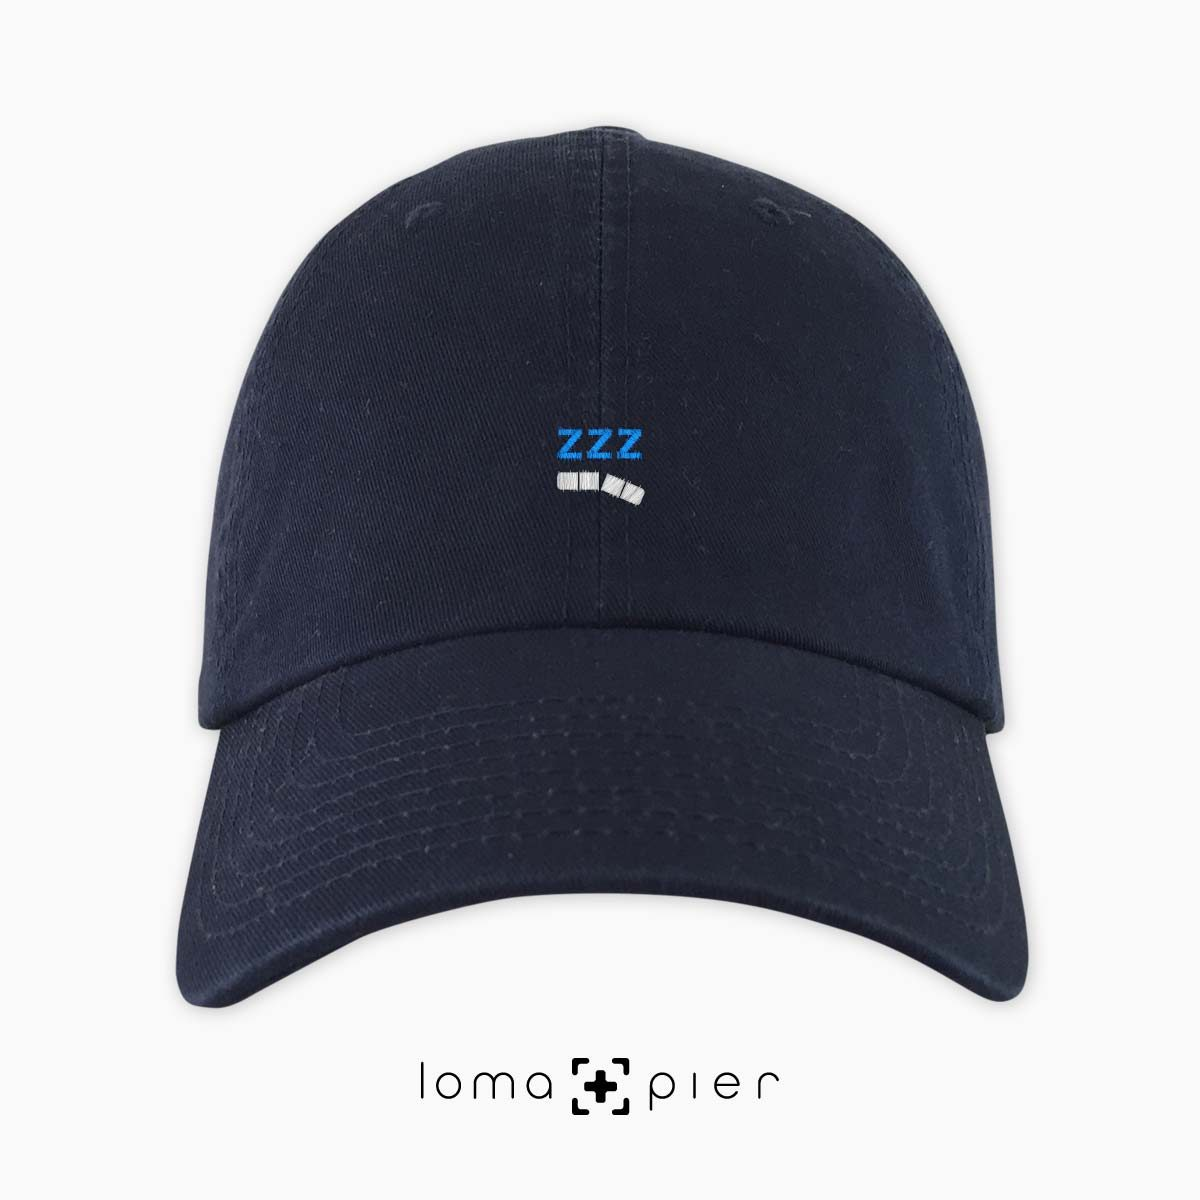 ZZZ-ANNY icon embroidered on a navy blue unstructured dad hat with white and sky blue thread by loma+pier hat store made in the USA